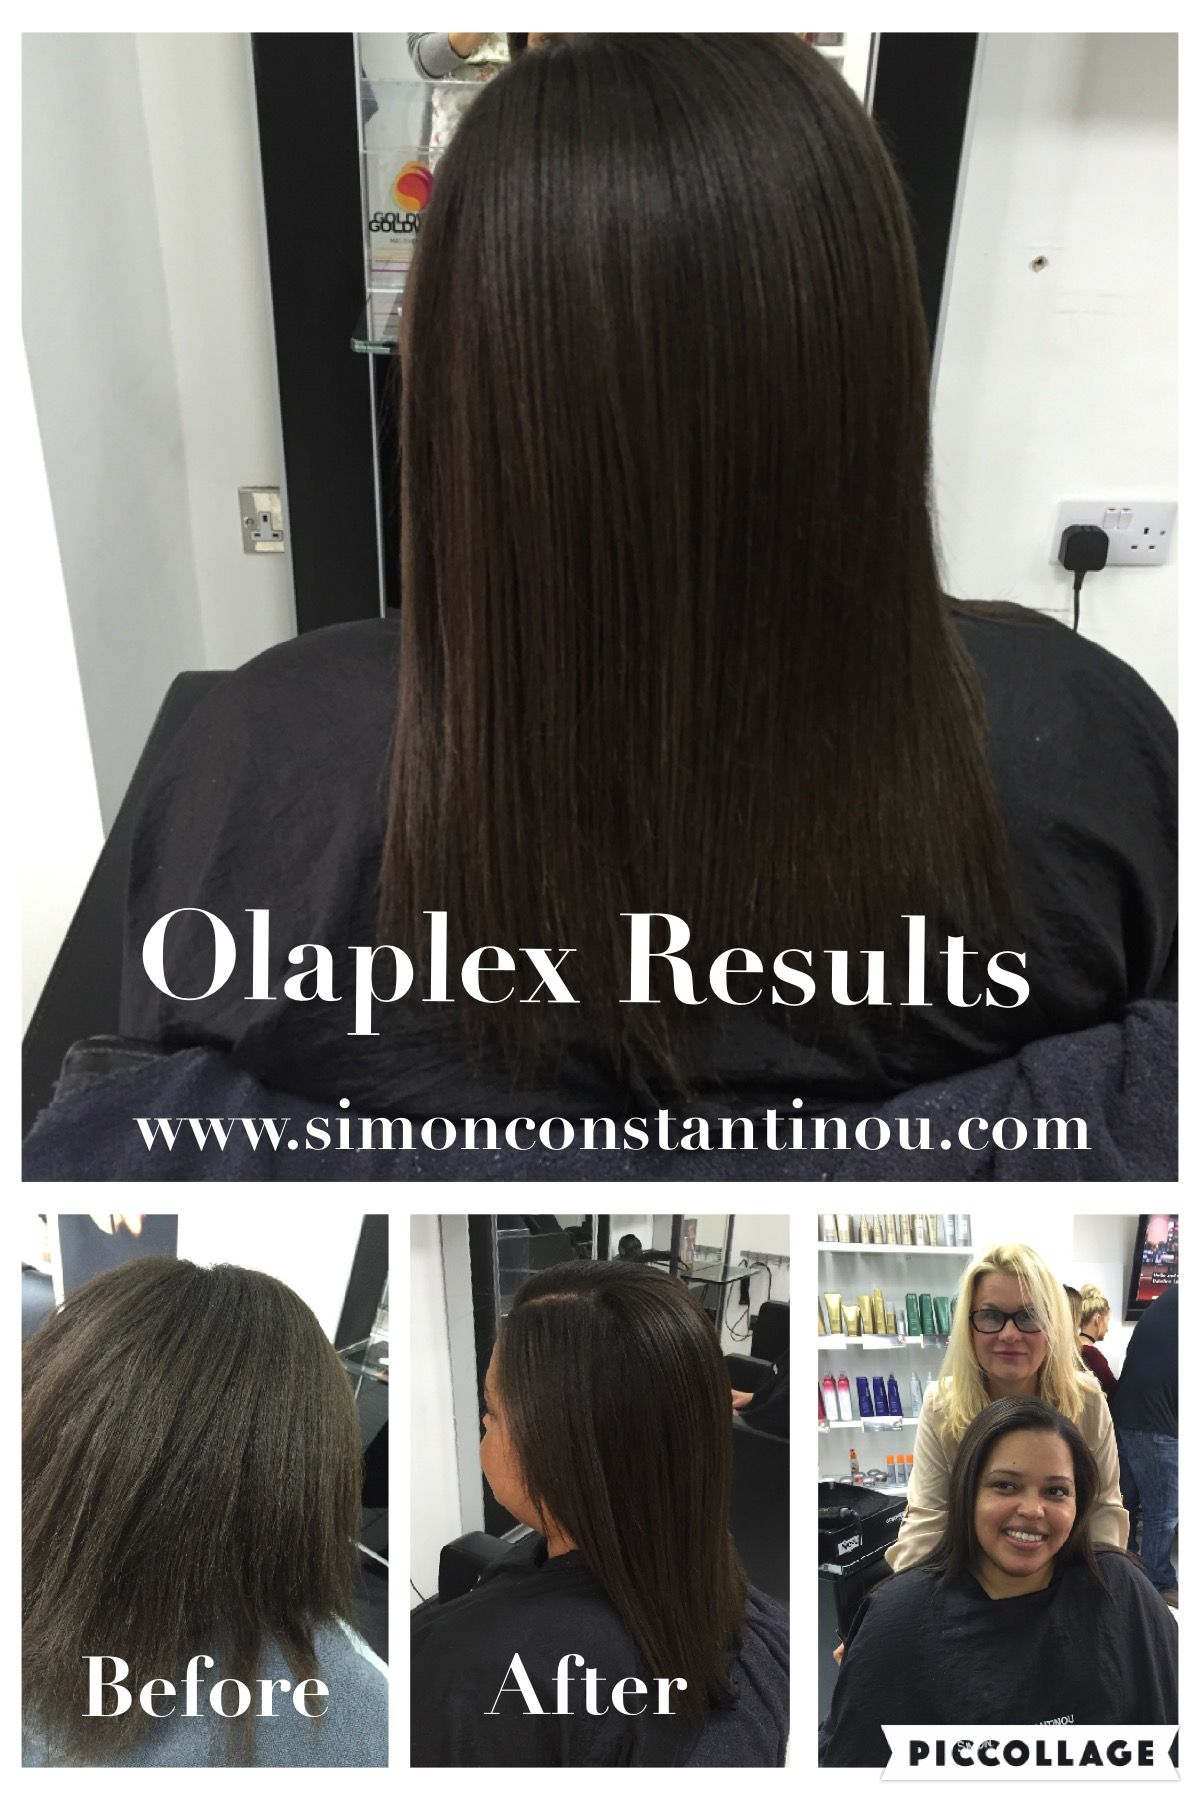 The Olaplex Results On Afro Caribbean Hair Are Awesome This Client